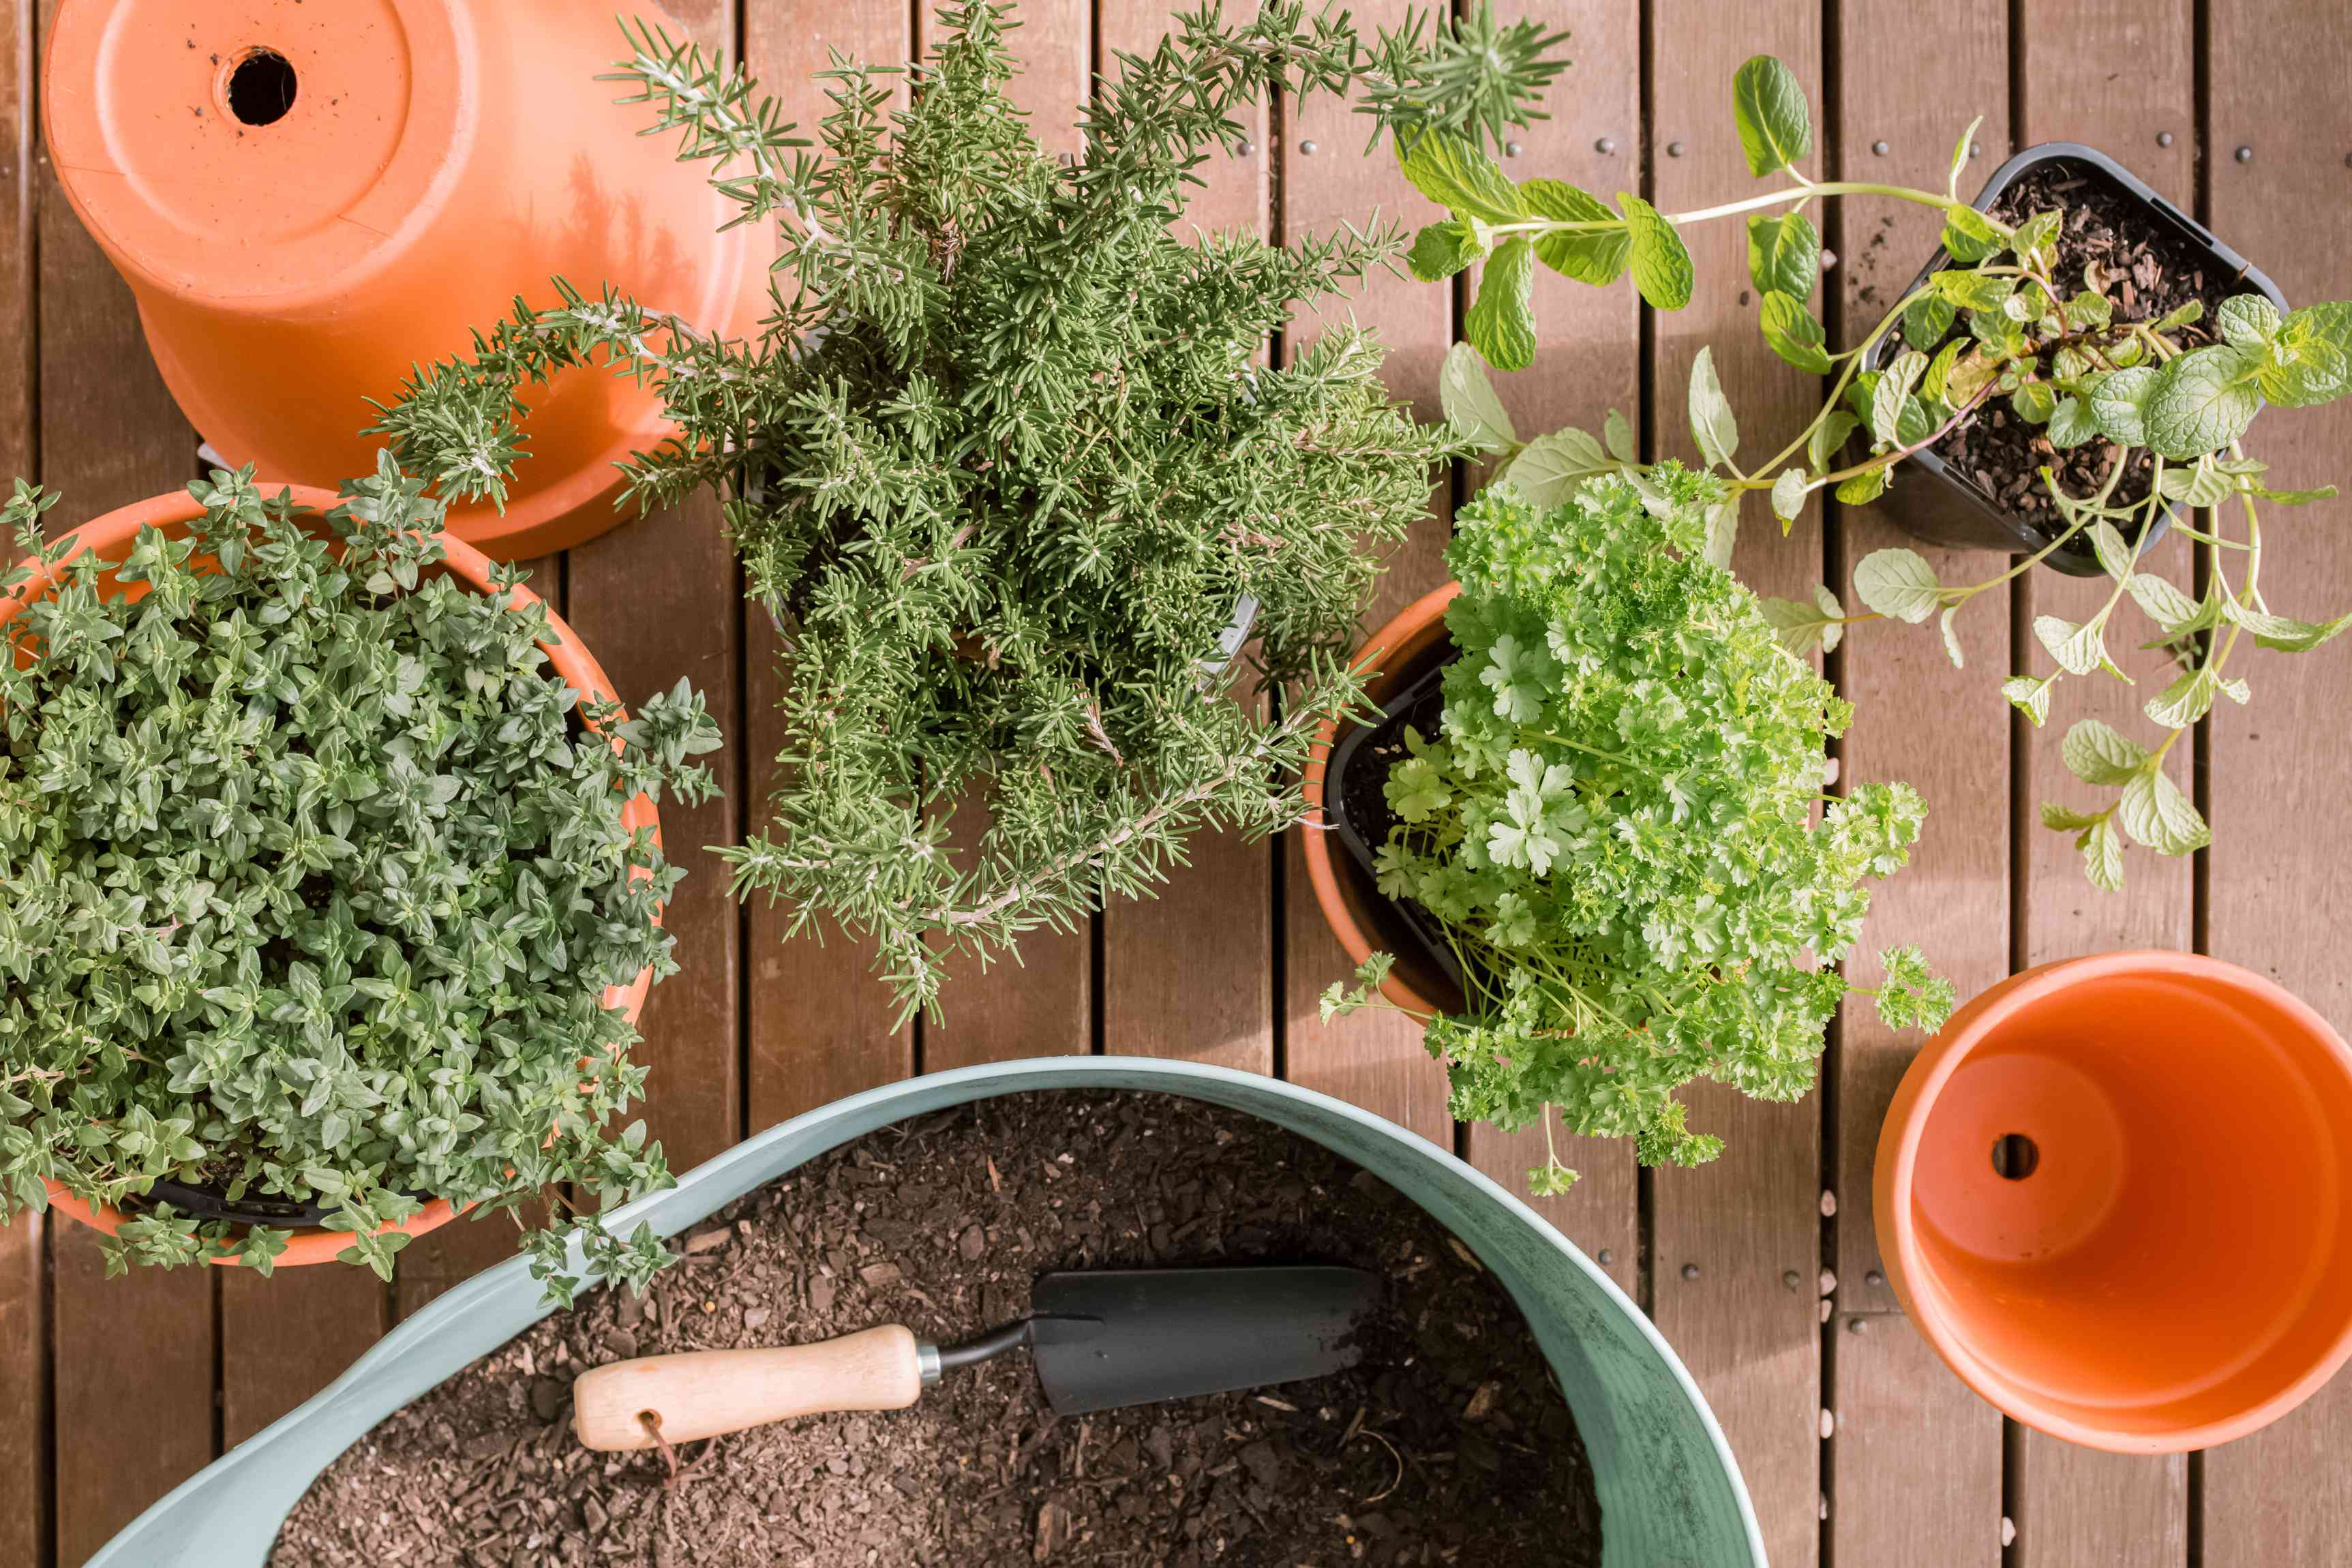 herbs in pots next to a large container